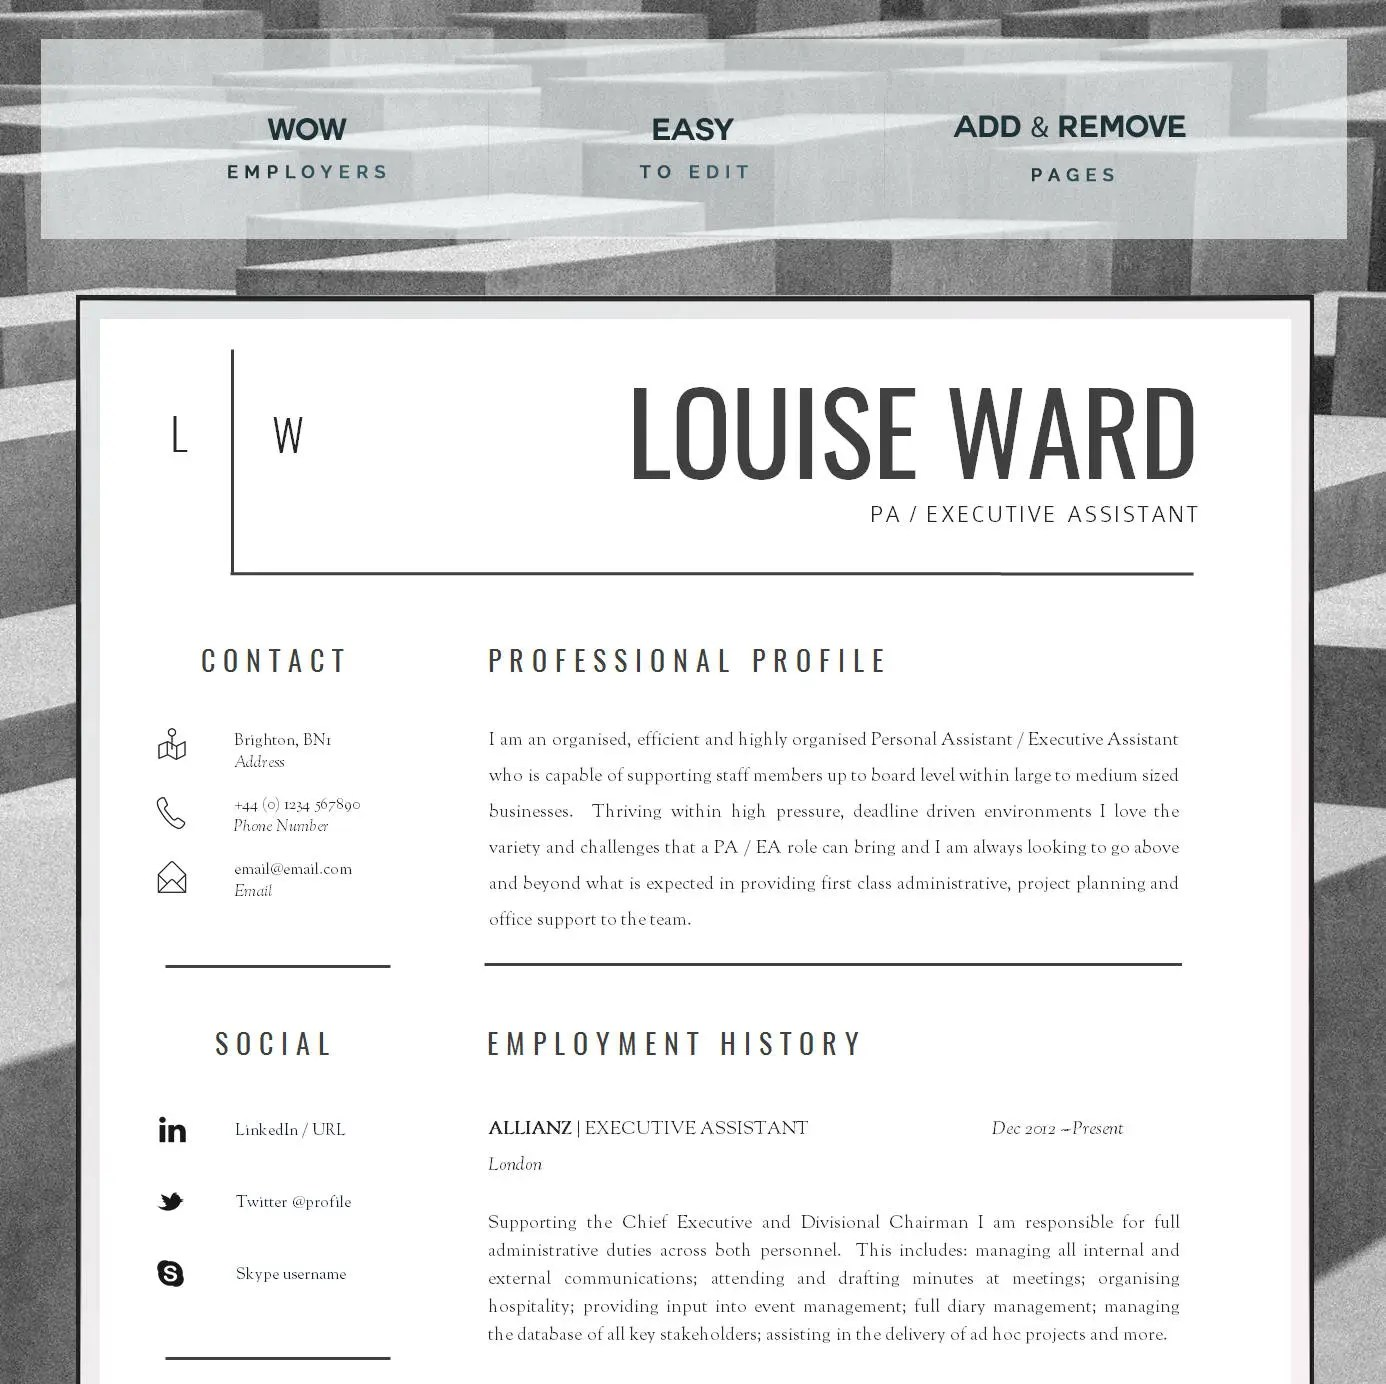 resume template cv template cover letter resume advice resume advice - Resume Advice